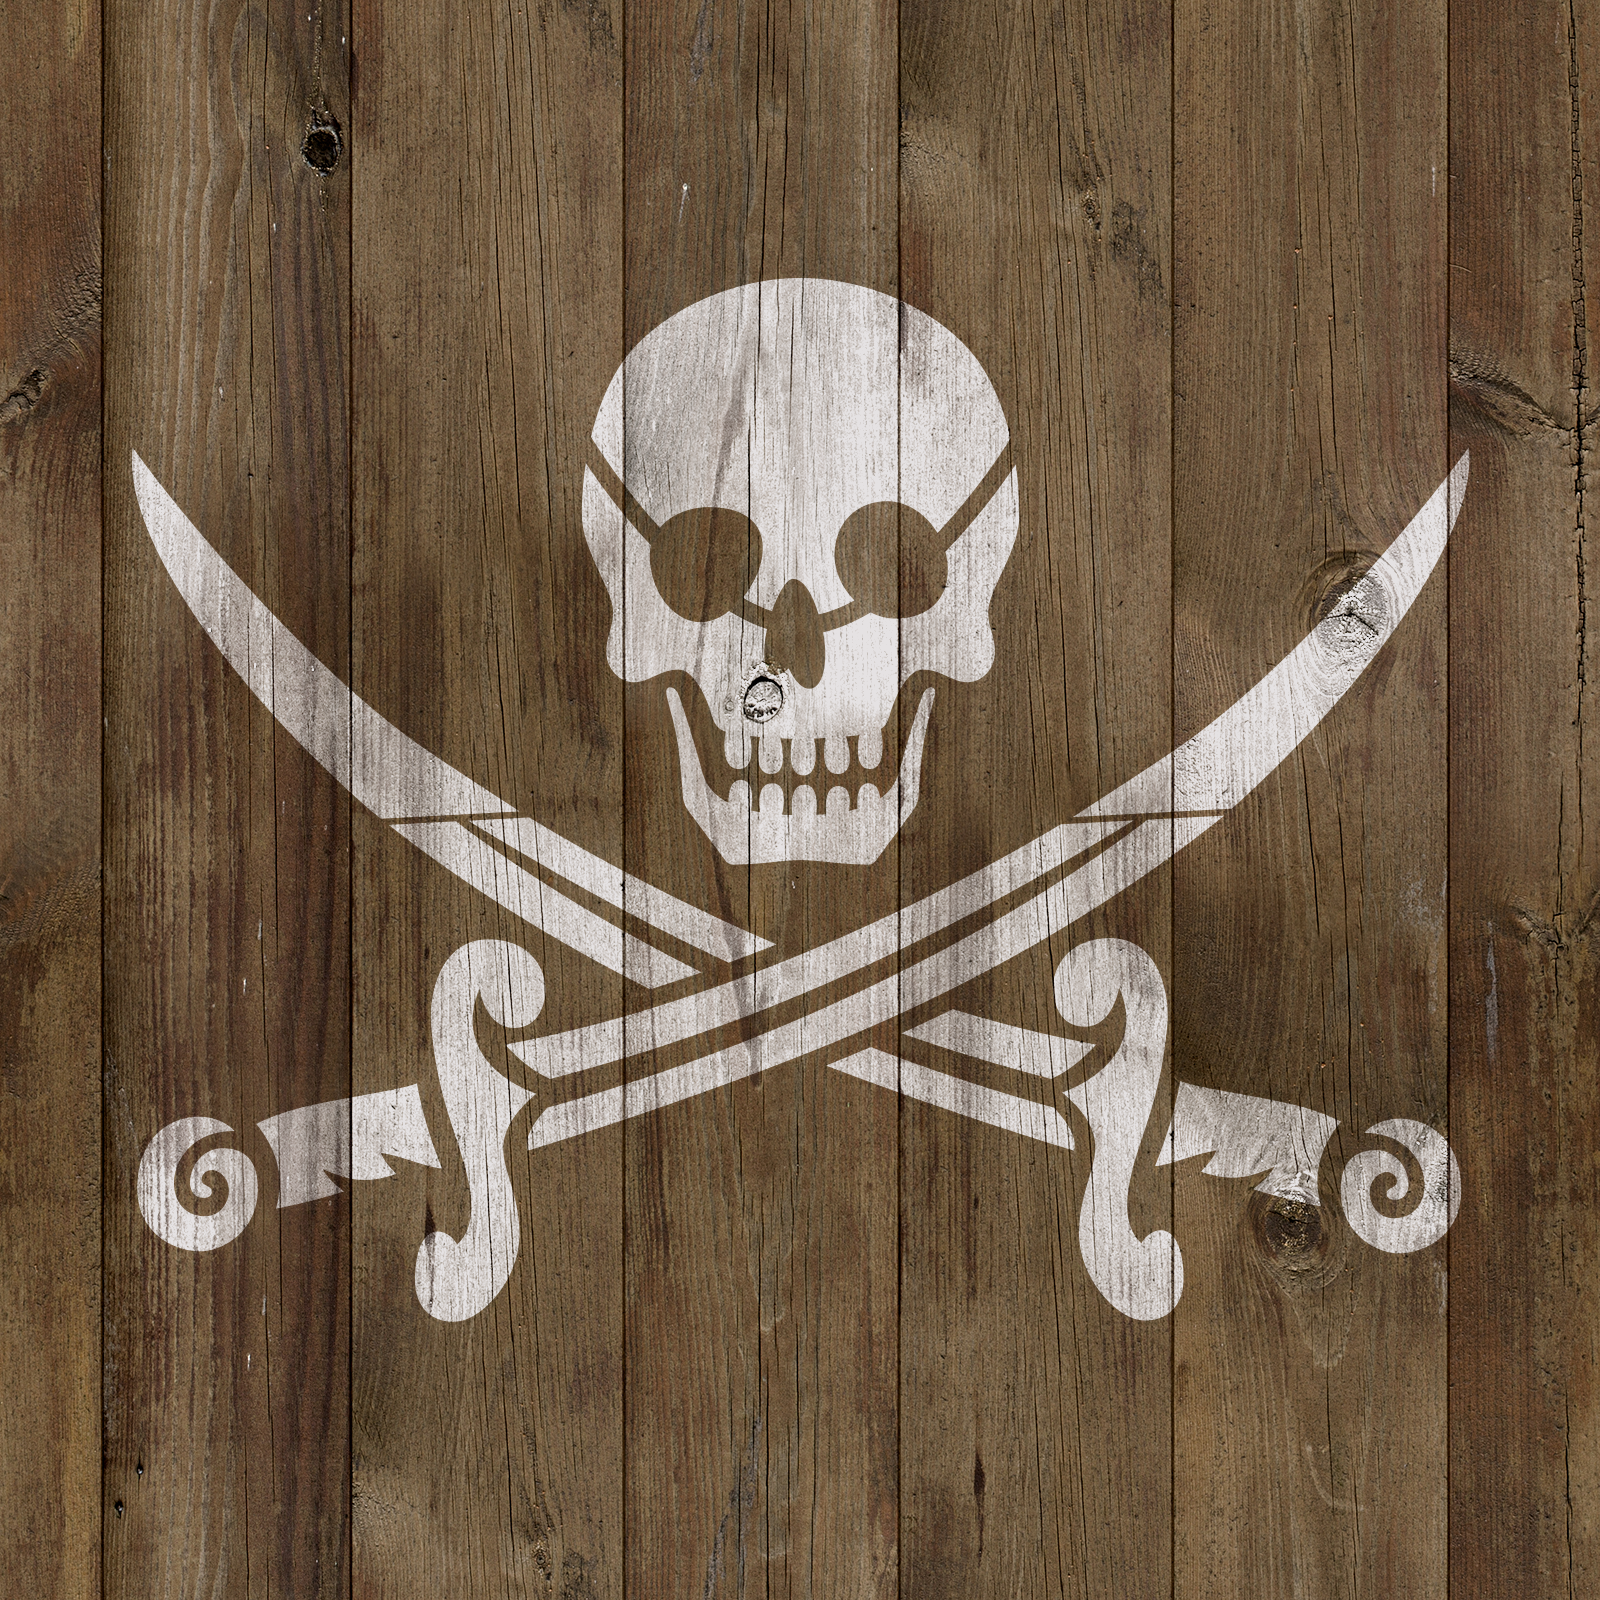 Pirate Stencil - Reusable Stencils of a Pirate Flag in Small & Large Sizes